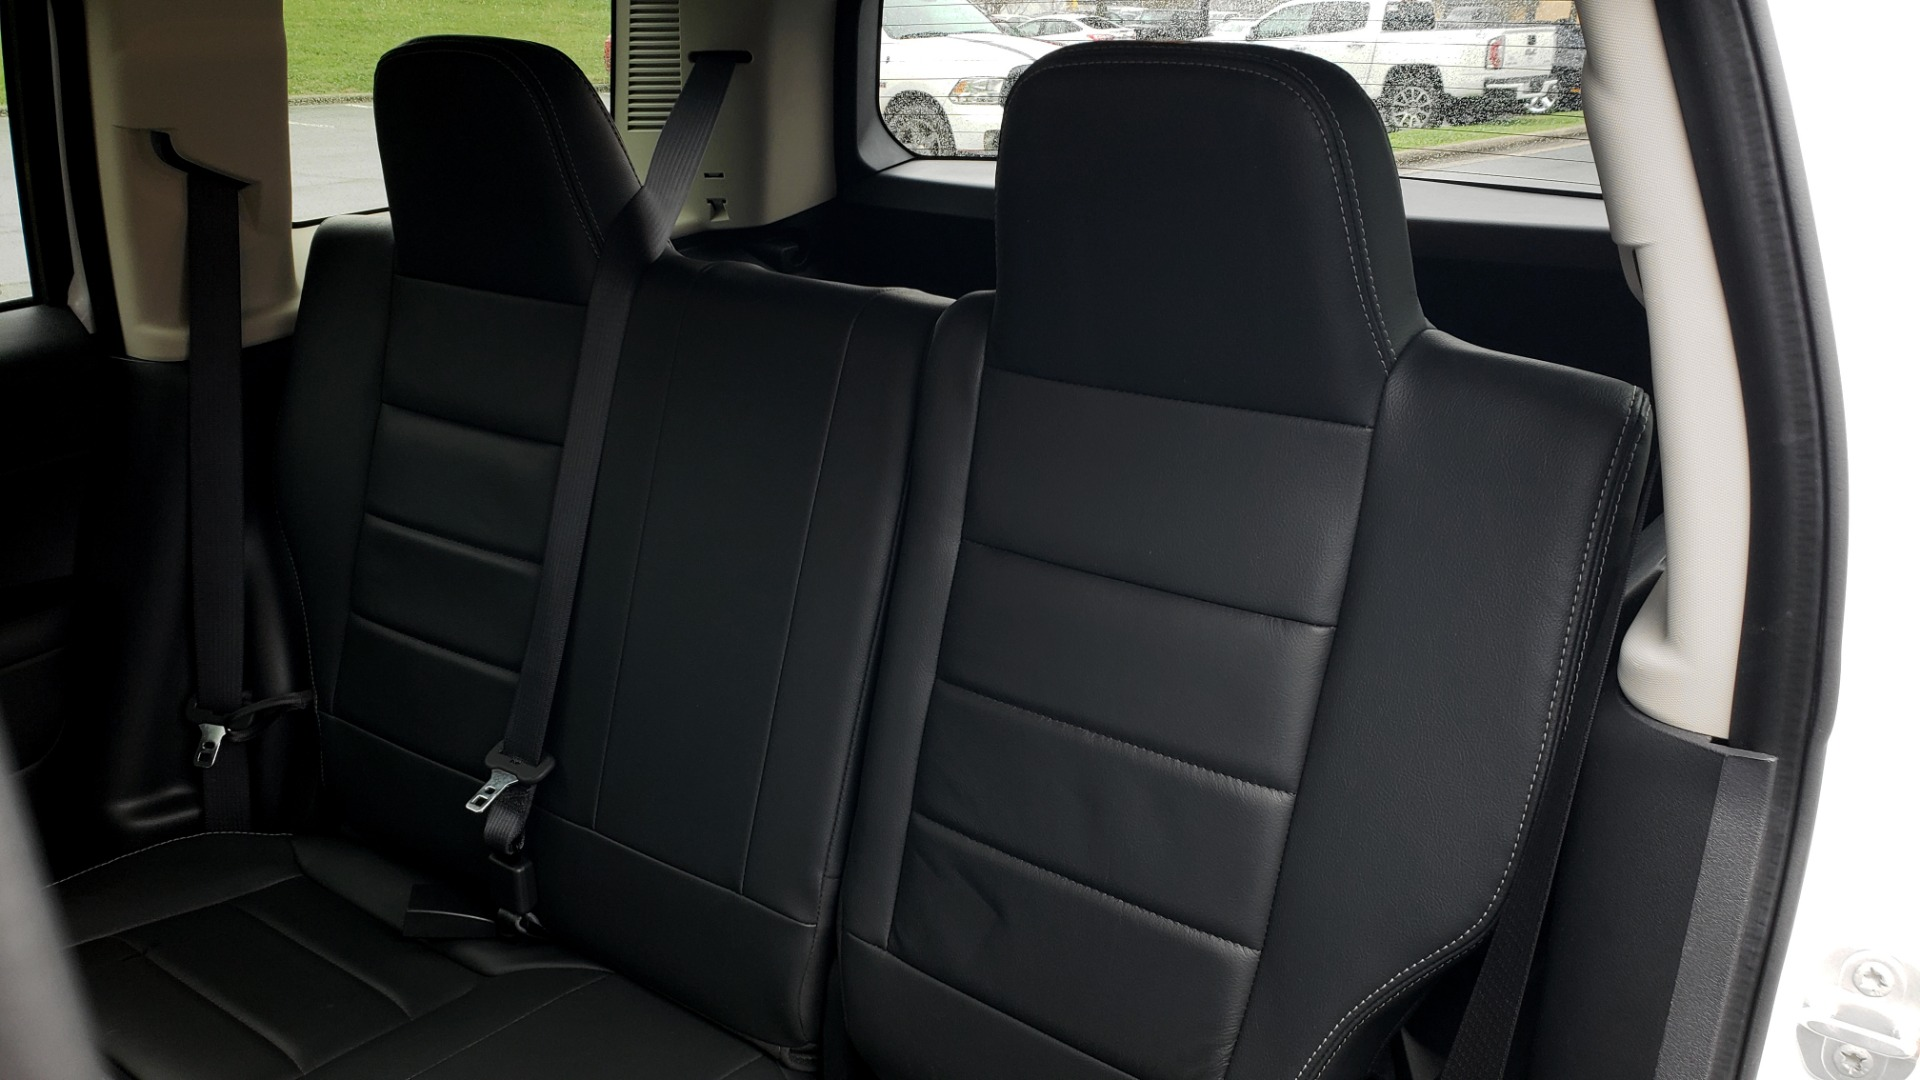 Used 2016 Jeep PATRIOT HIGH ALTITUDE EDITION 4WD / SUNROOF / 4-CYL / 6-SPD AUTO for sale $14,695 at Formula Imports in Charlotte NC 28227 43